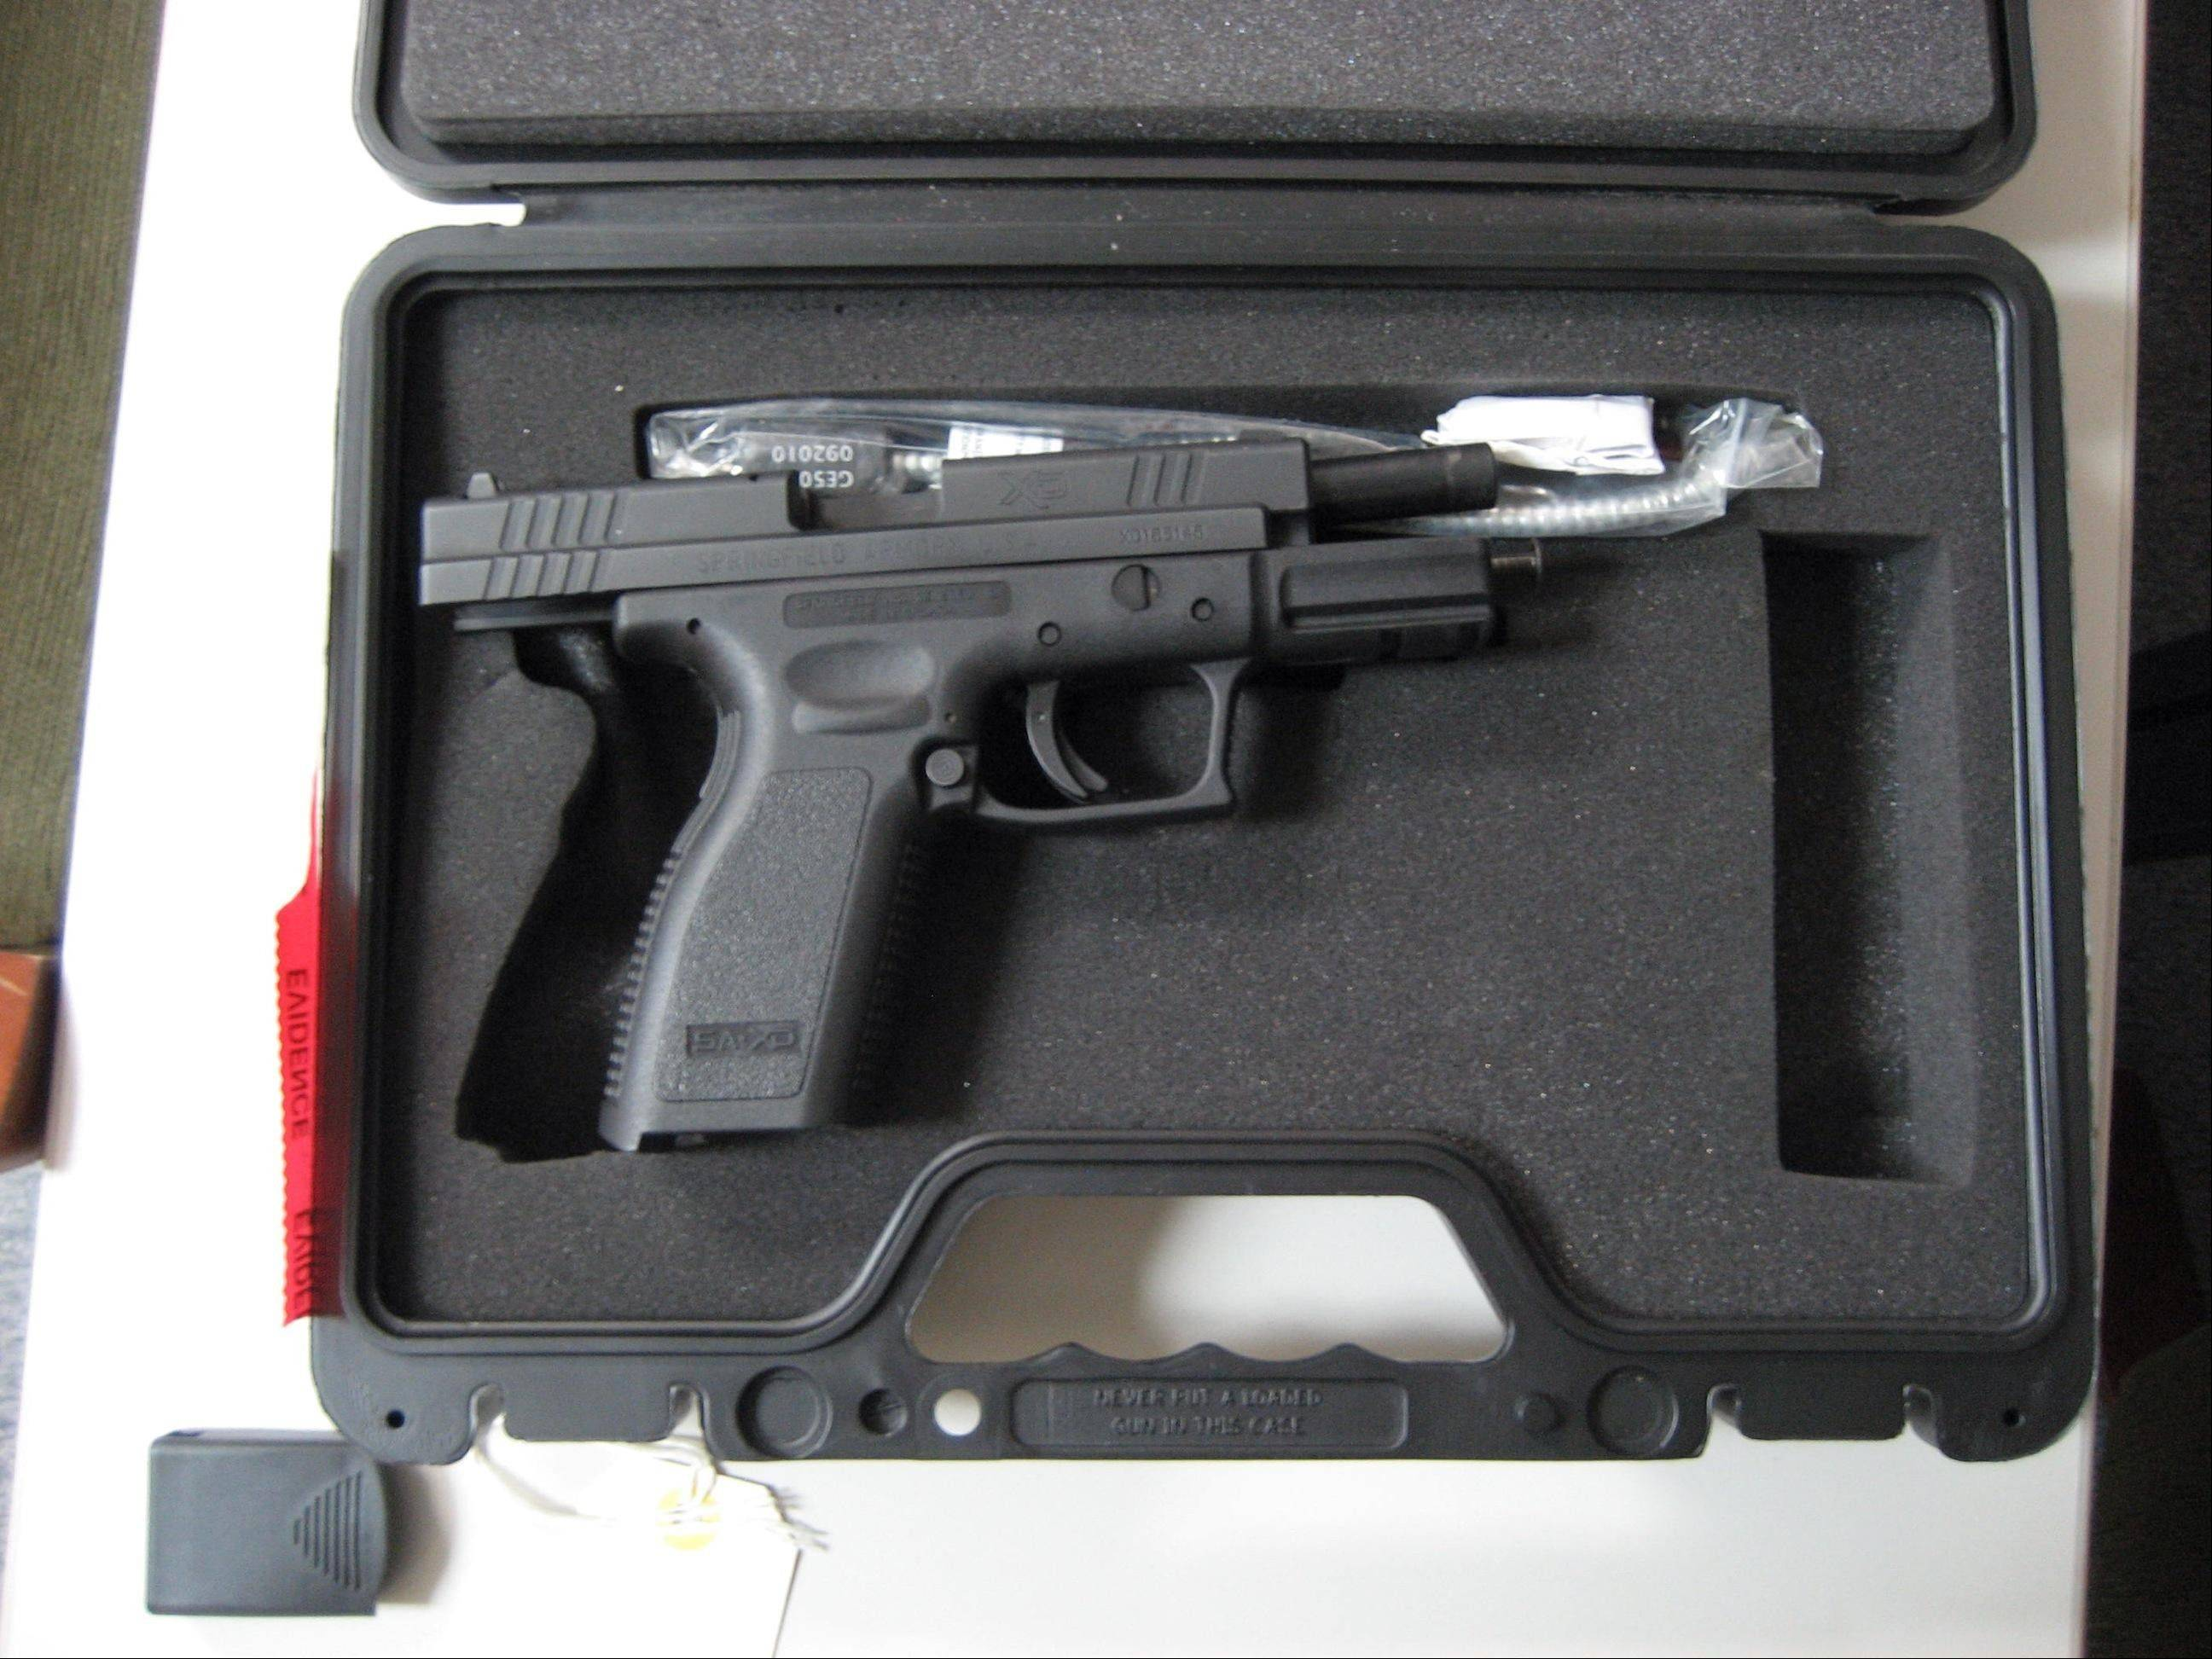 Round Lake Park police say Glenford O. Coombs of Volo used this loaded 9 mm semiautomatic pistol to threaten a man and his 11-year-old daughter Tuesday. Police said they also recovered roughly 100 rounds of 9 mm ammunition from Coombs' Mercedes-Benz.